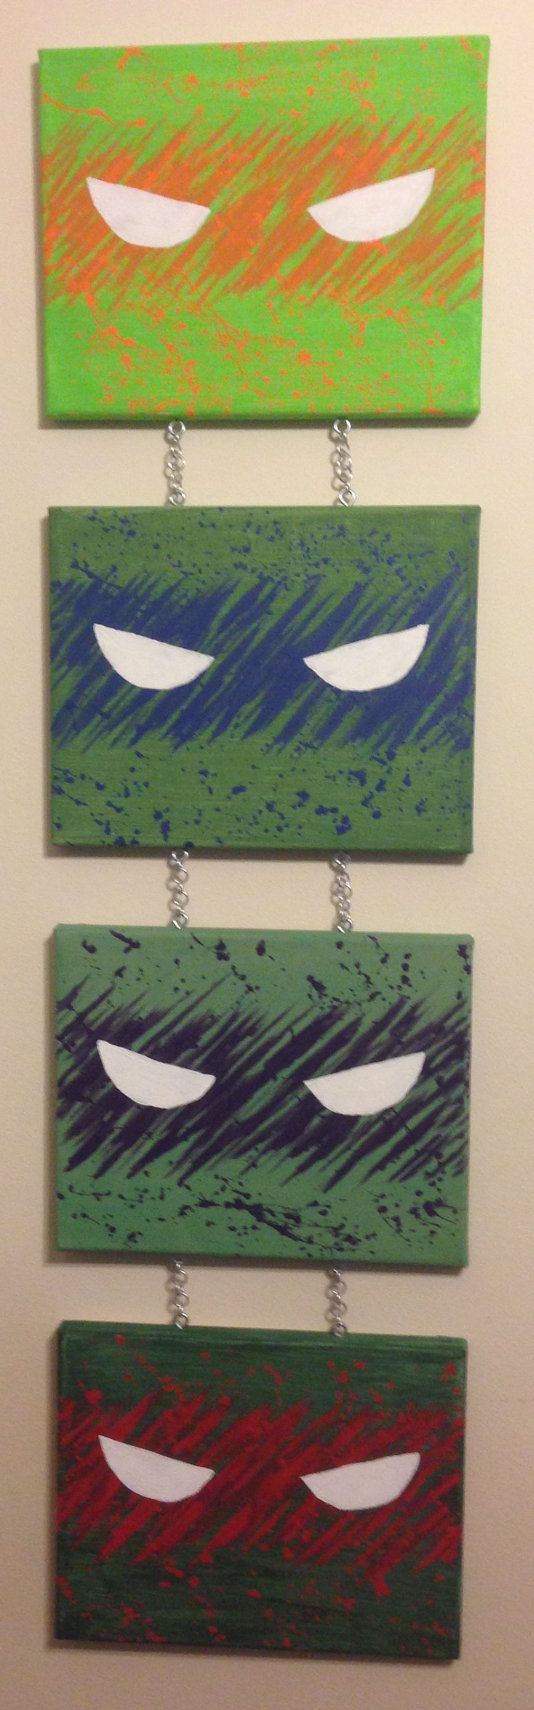 Teenage Mutant Ninja Turtles, Splatter Paint, TMNT, Michelangelo, Leonardo, Donatello, Raphael, Acrylic, Paint, Canvas